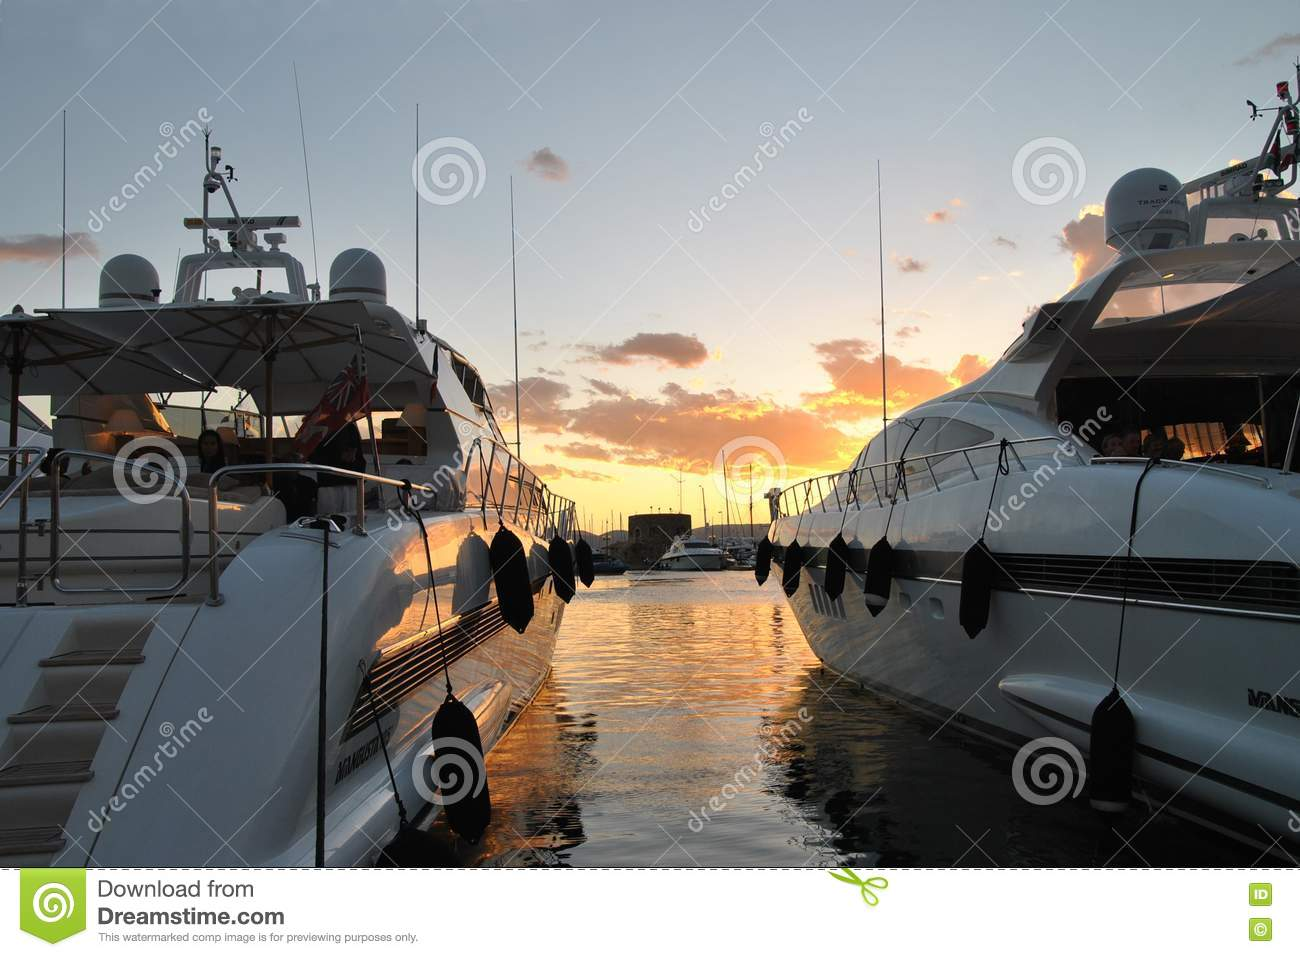 Two yachts on the sunset sky background